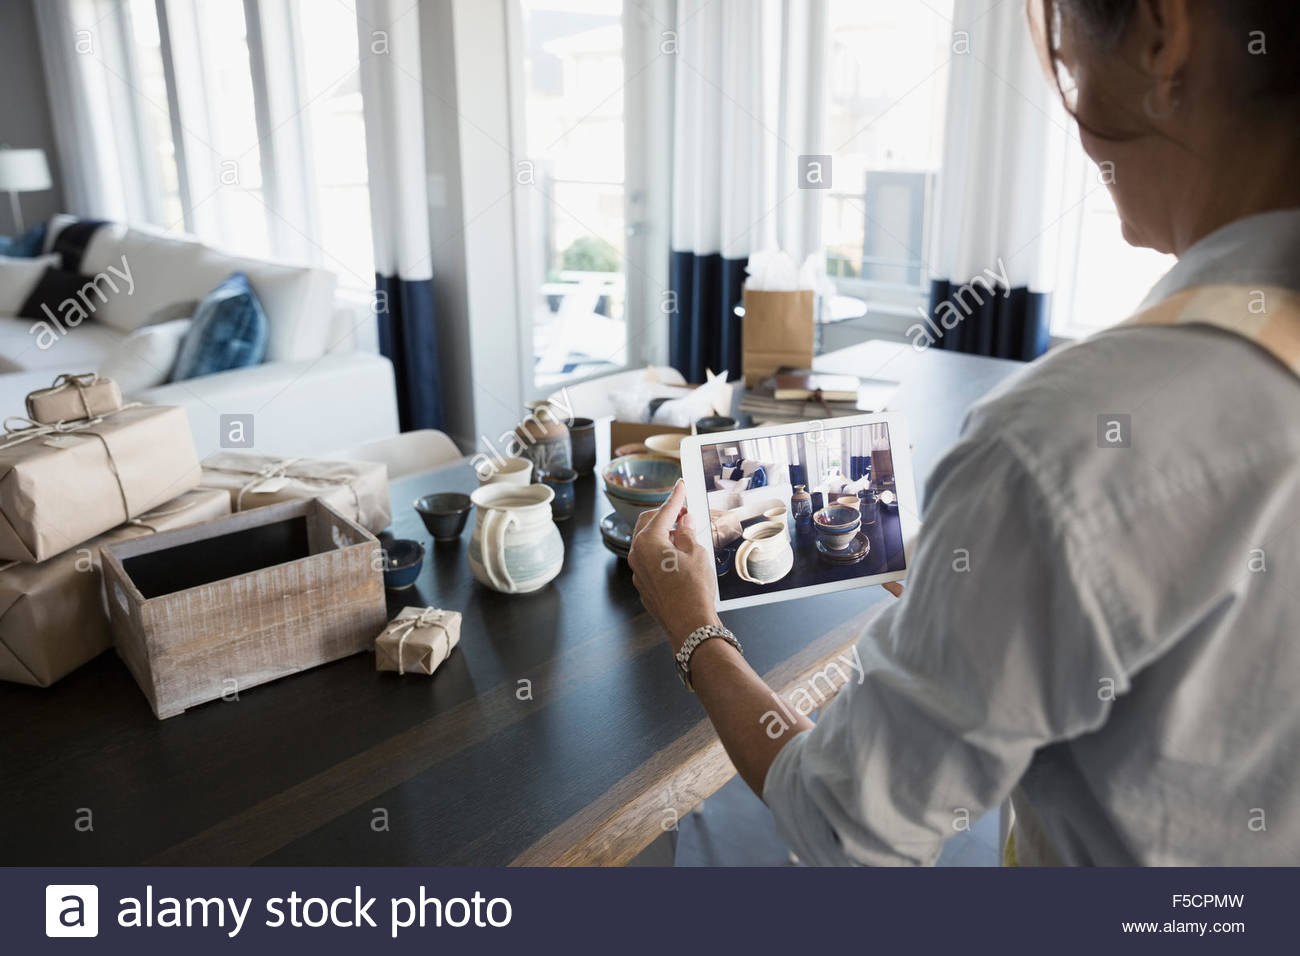 Woman photographing pottery with digital tablet - Stock Image